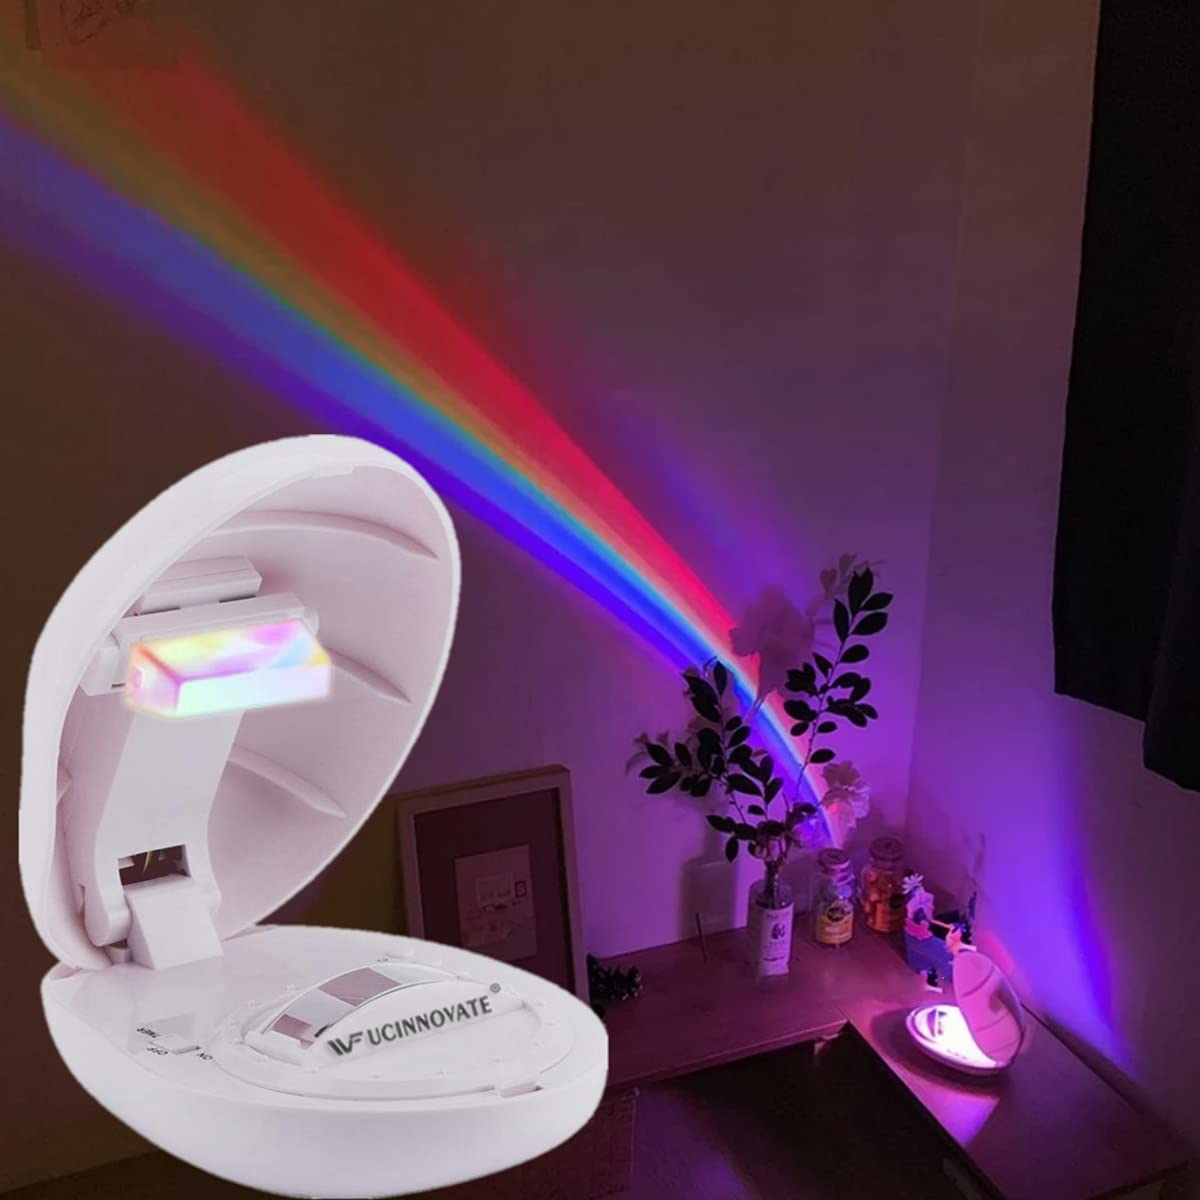 UCIN Neon Lights Rainbow Projector with 3 Modes Art Rainbow Light Portable Night Light, Indoor Wall Decor for Christmas Gifts, Kids Room, Living Room, Party Decoration